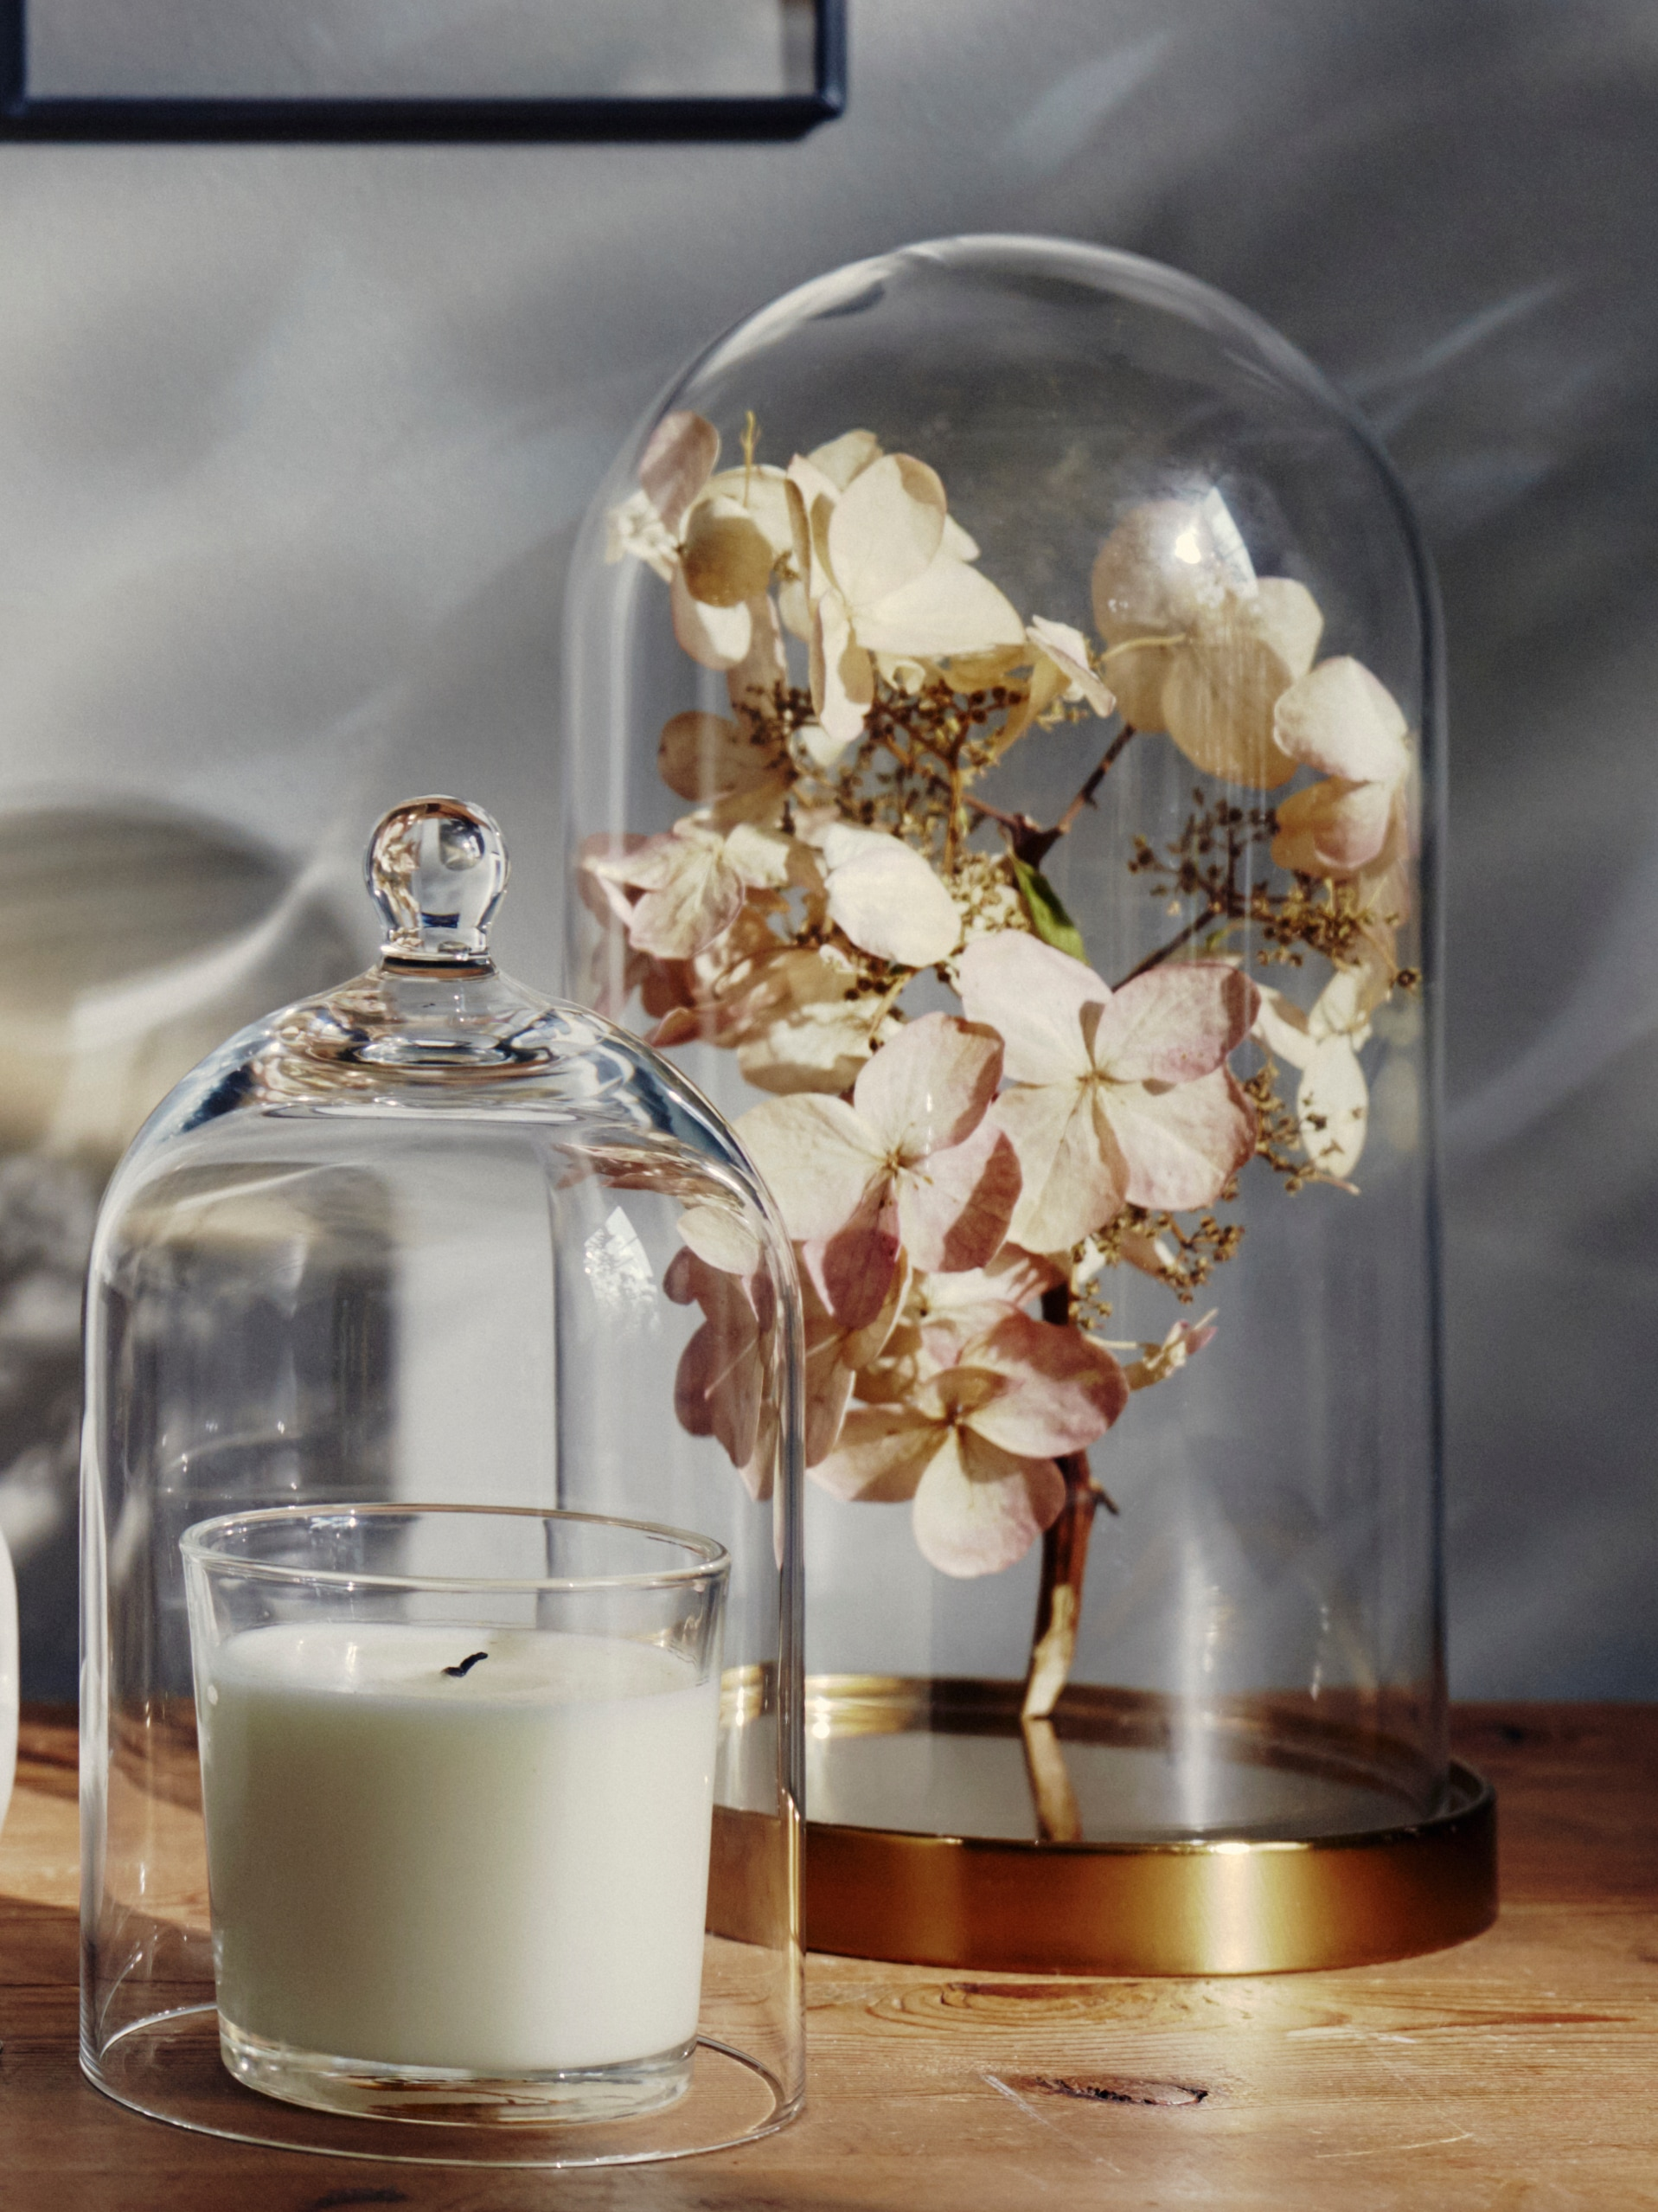 A BEGÅVNING glass dome with base holds a spring of dried flowers by another glass dome covering an unlit candle on a table.